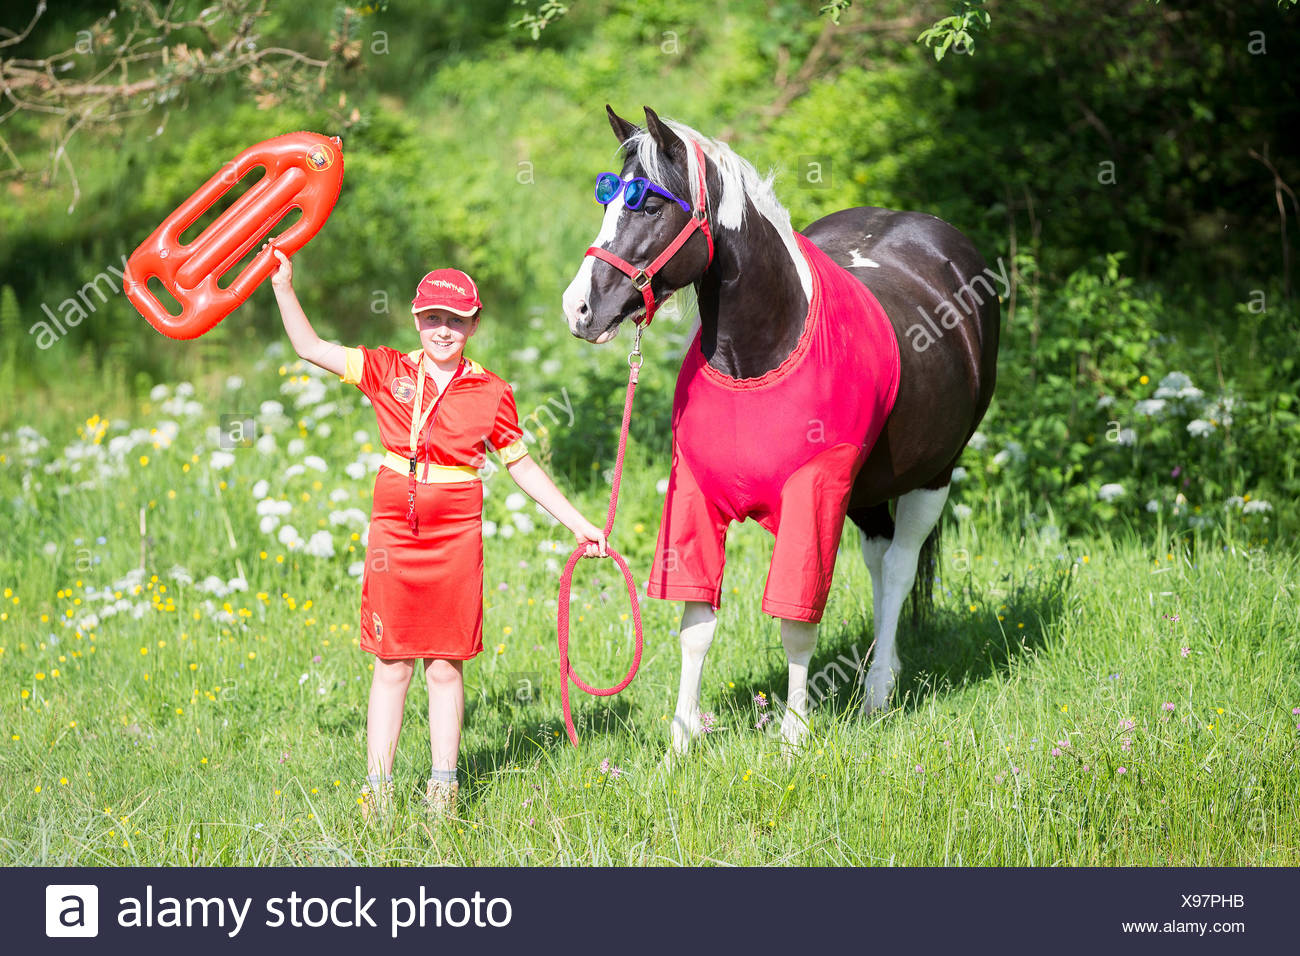 American Paint Horse Child And Horse In Lifeguard Costumes Baywatch Austria Stock Photo Alamy